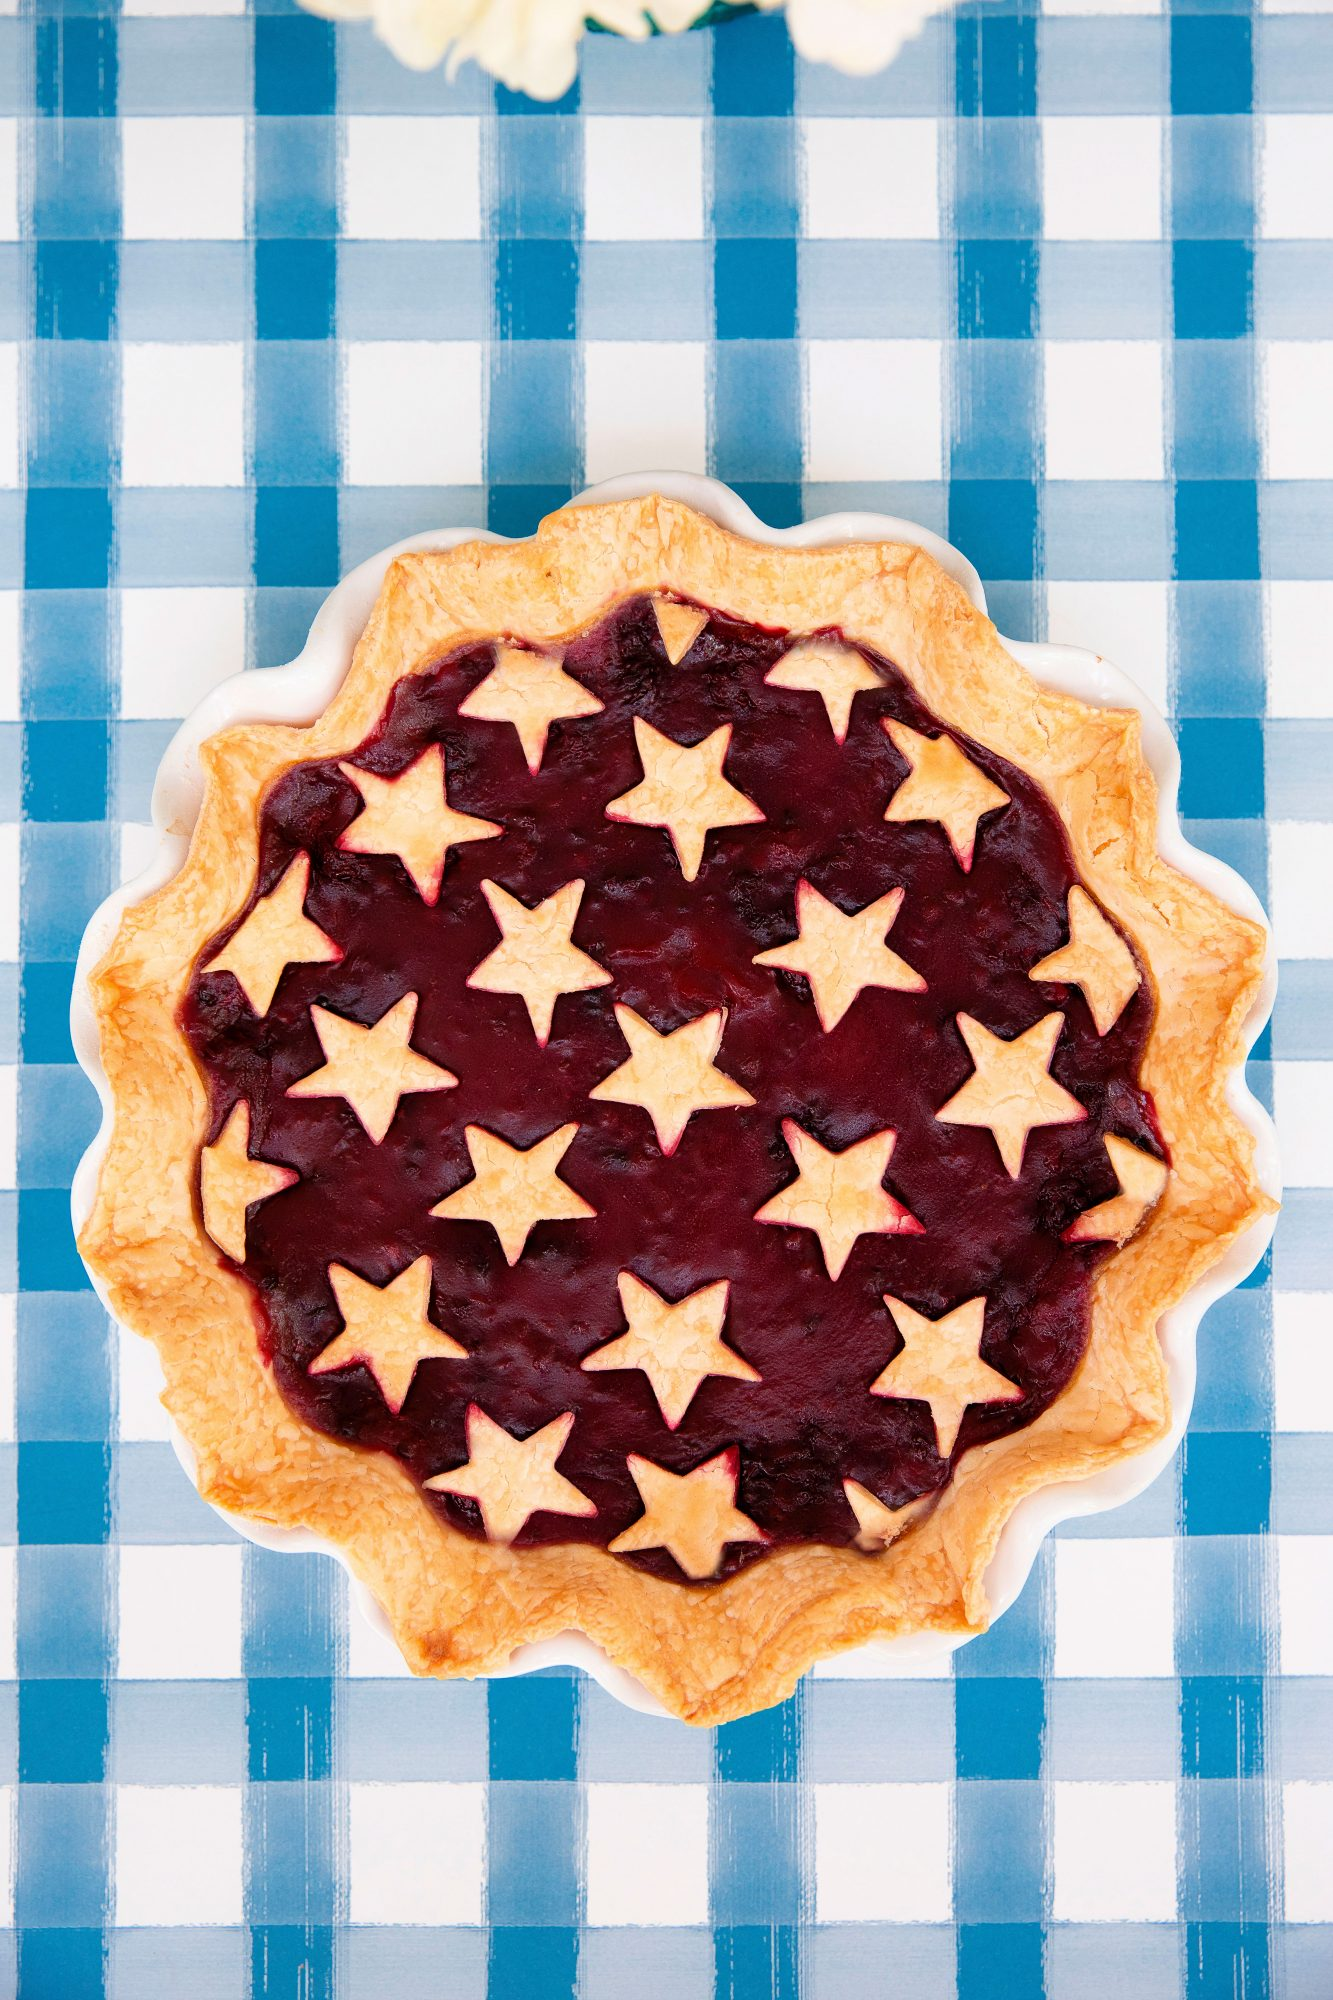 50 Fourth of July Recipes for an All-American Cookout